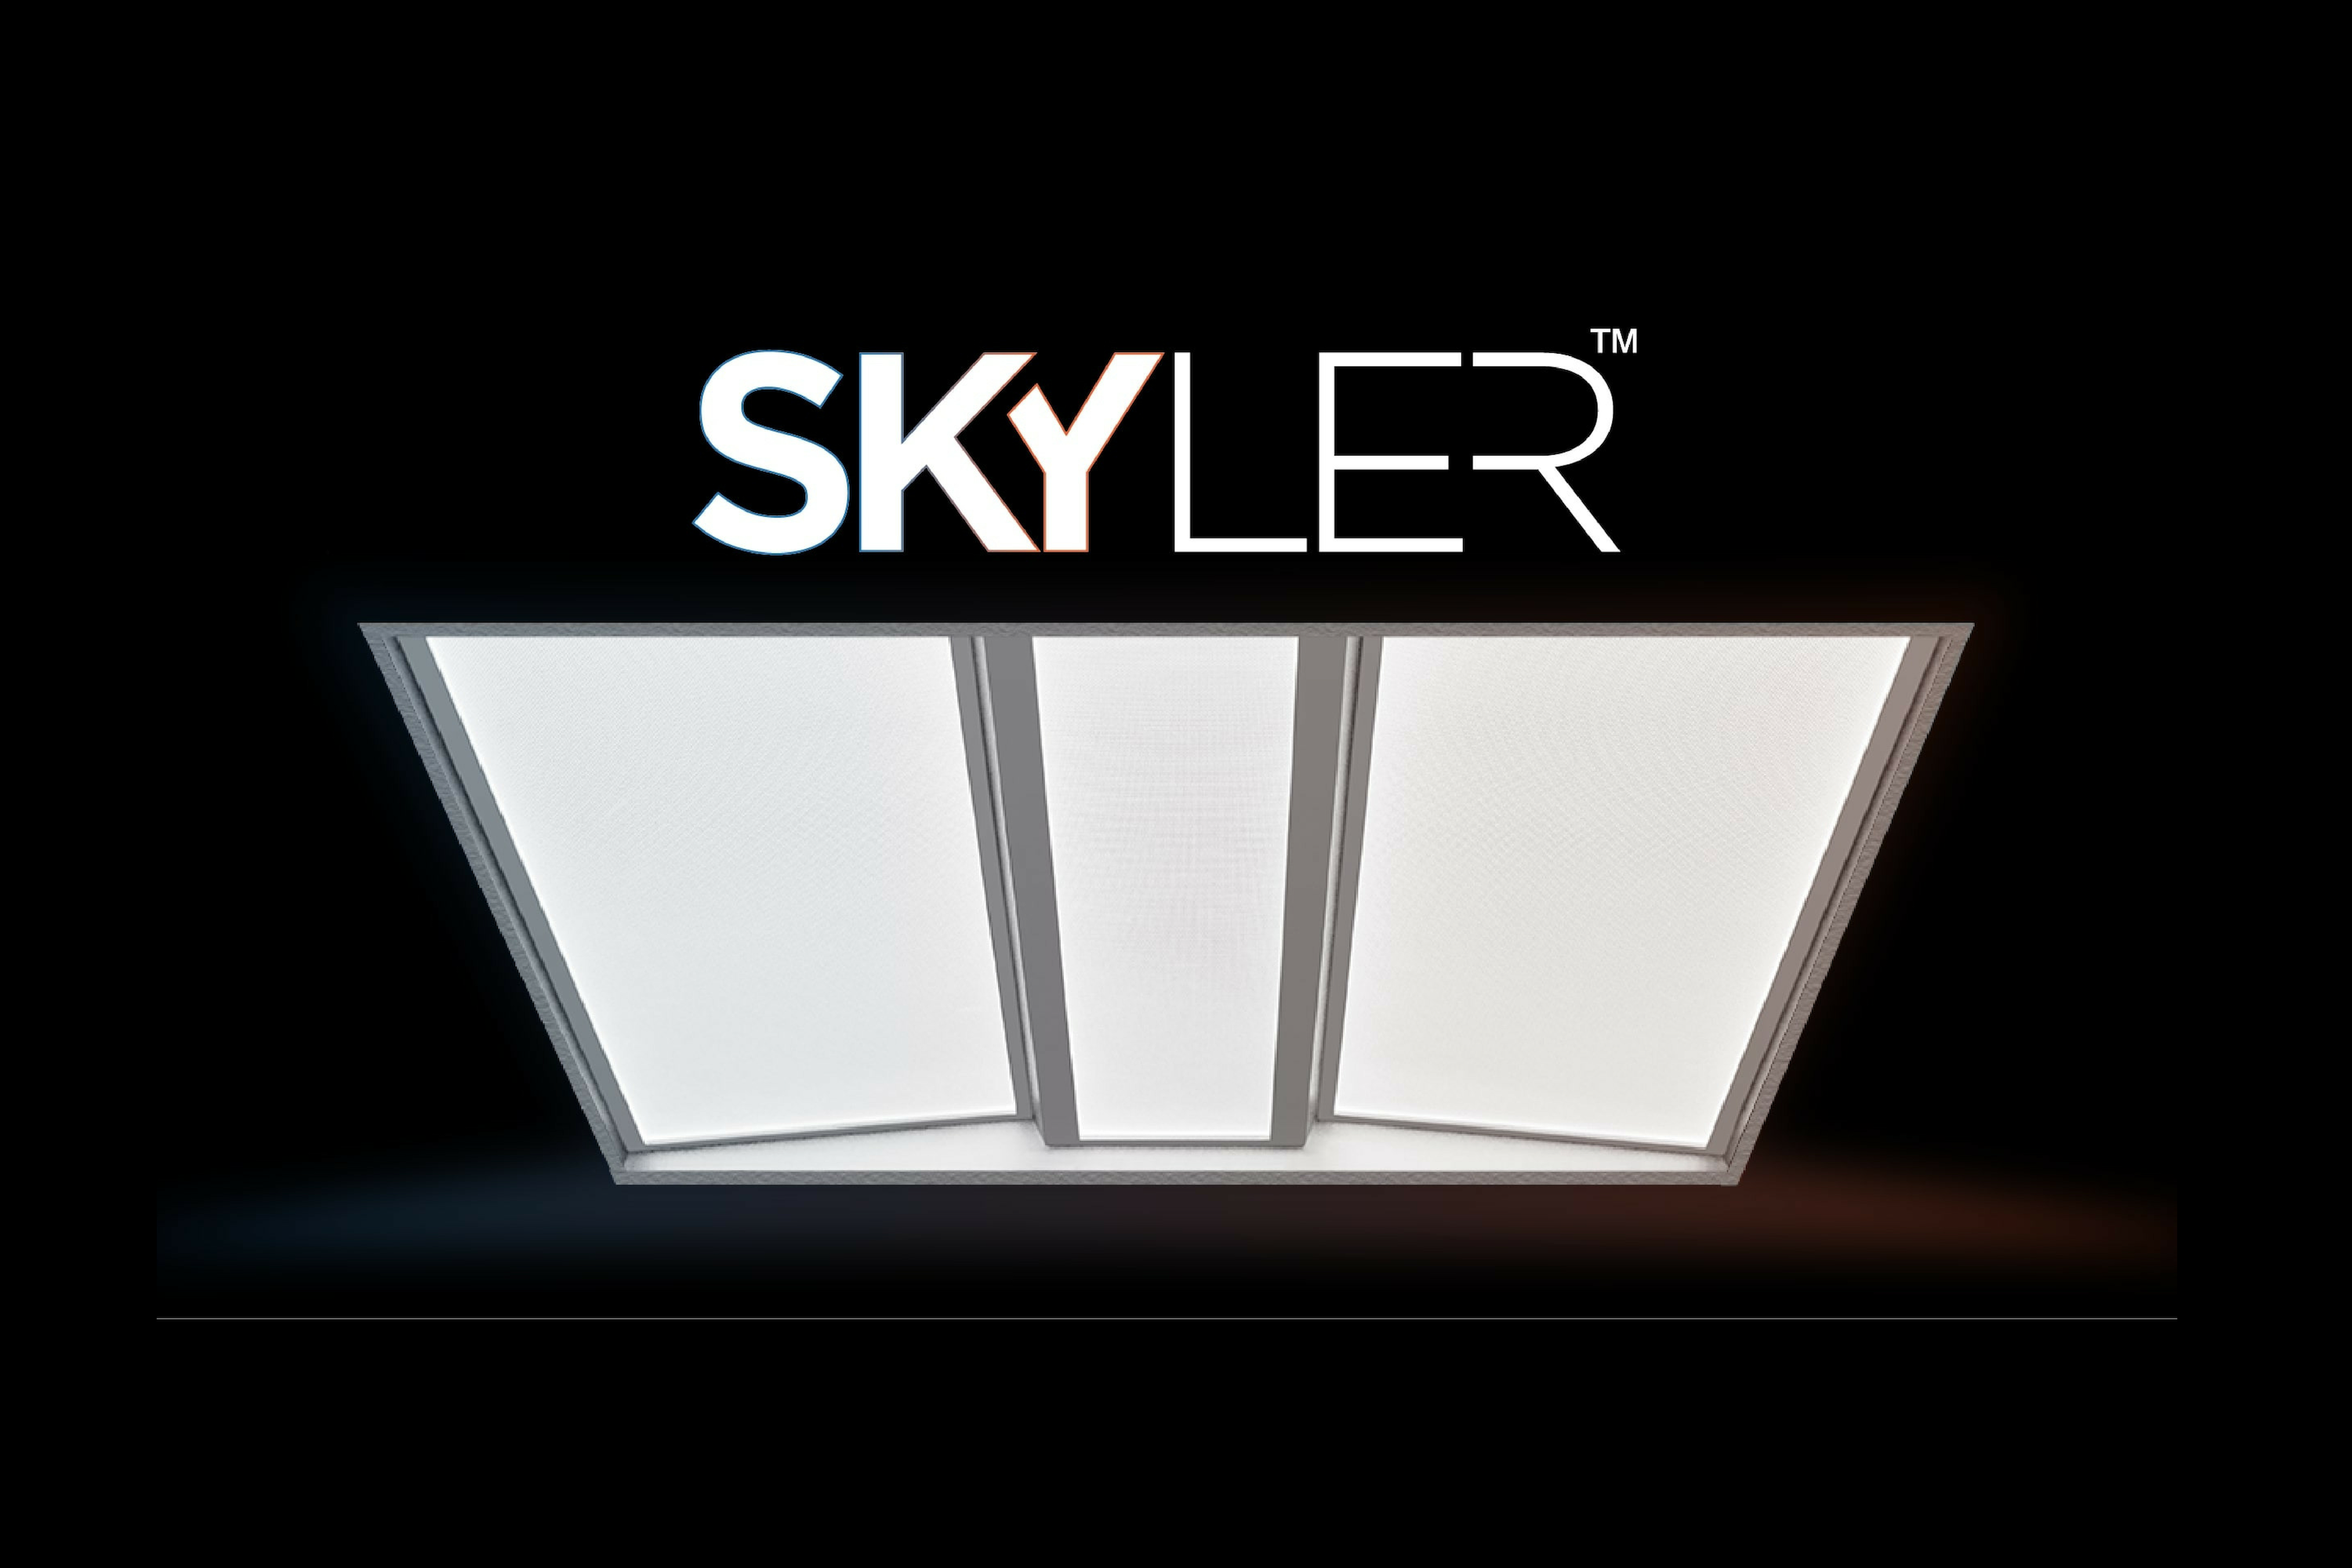 Deco lighting expands led lighting portfolio with skyler d464 juggernaut and evian